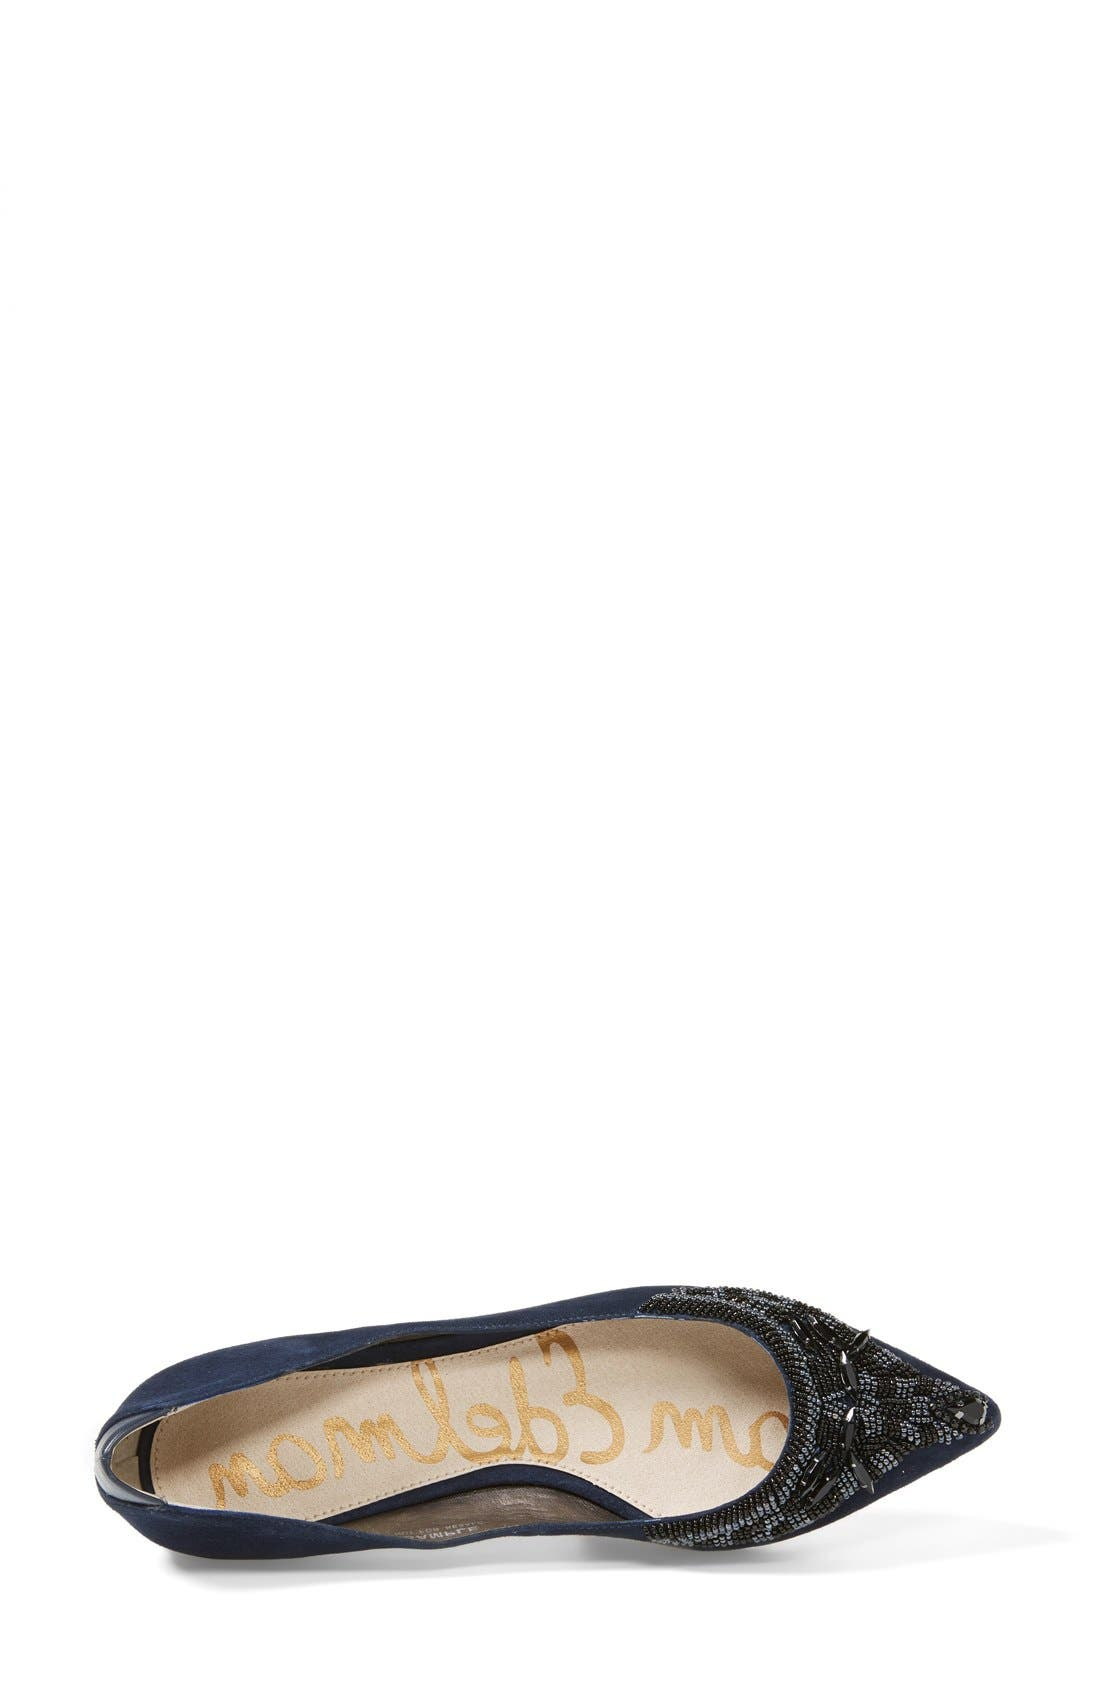 Alternate Image 3  - Sam Edelman 'Cindi' Beaded Pointy Toe Flat (Women)